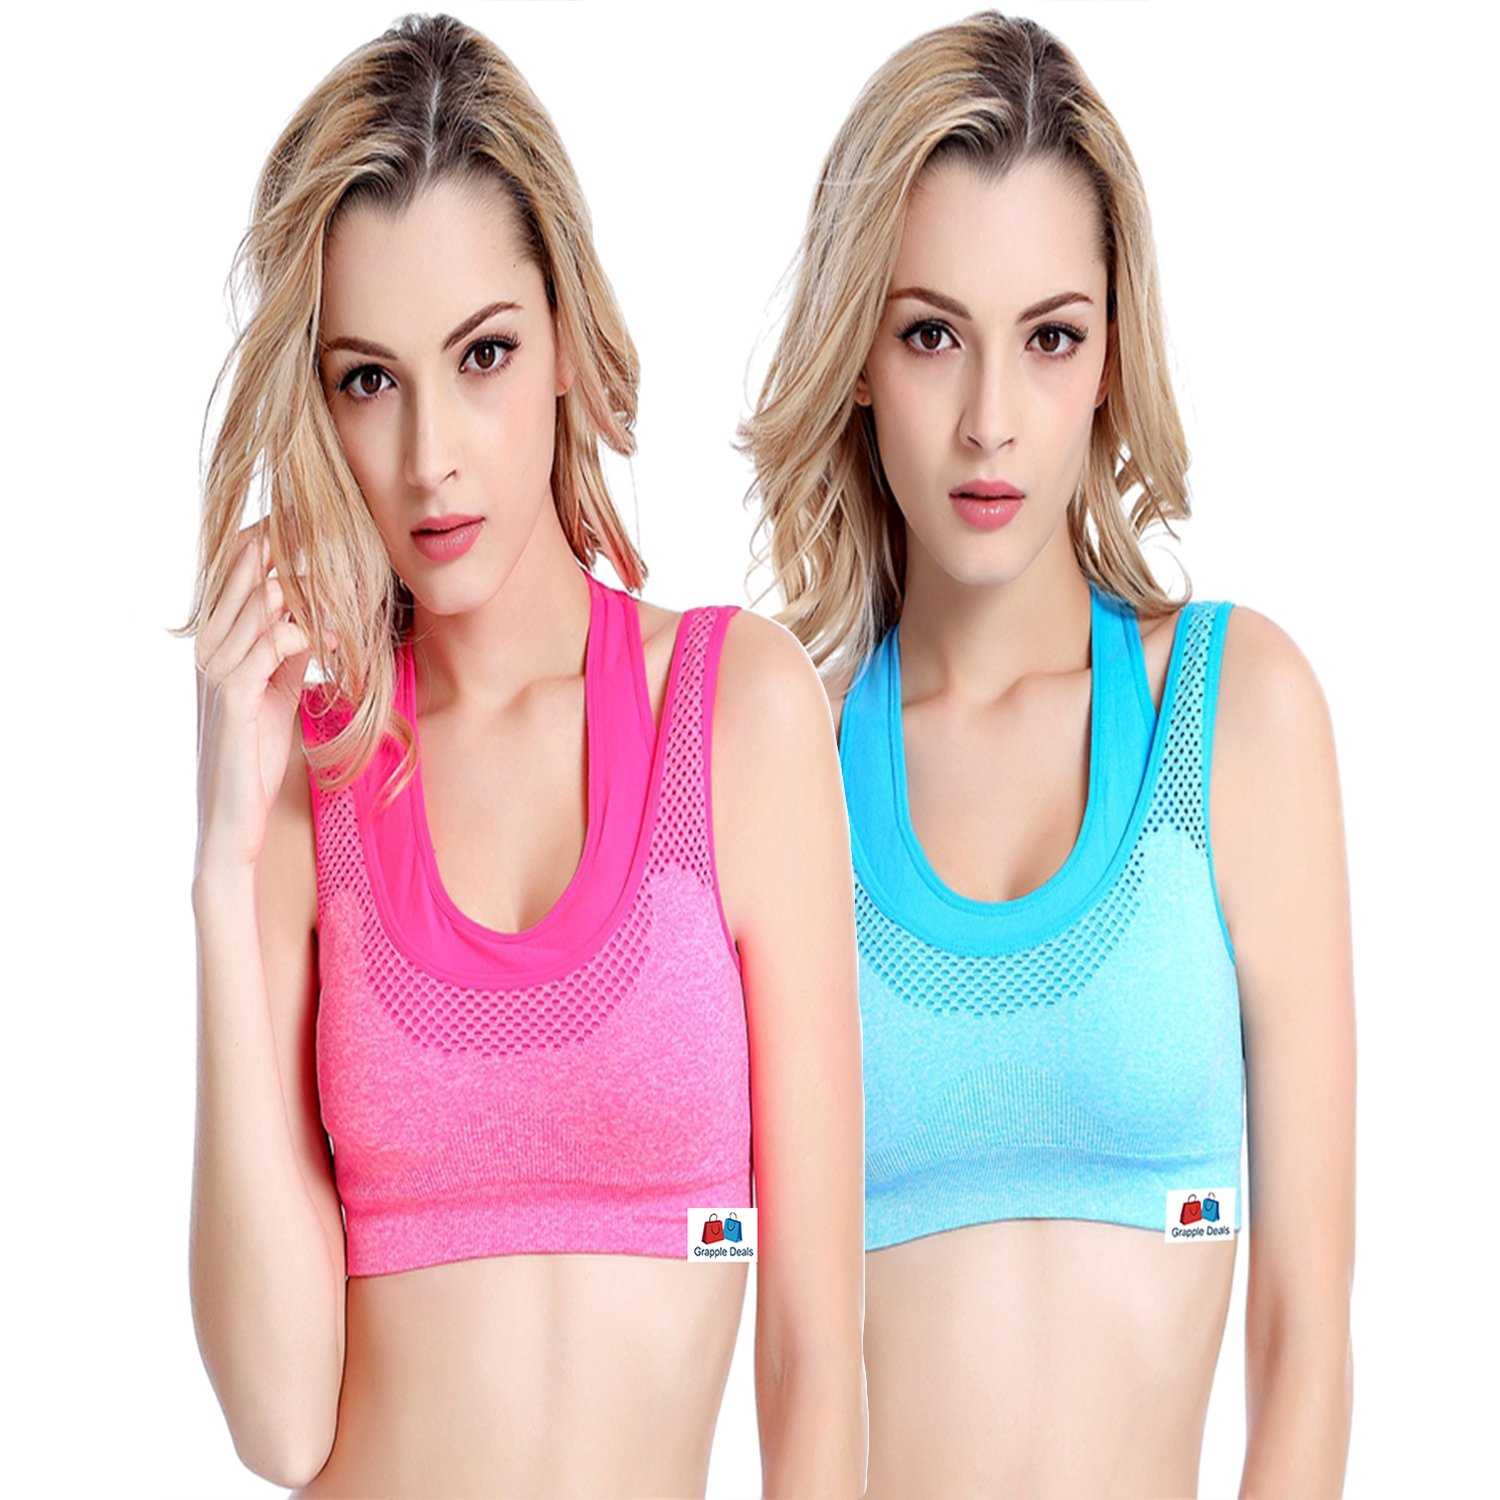 cef27817fd53c GRAPPLE DEALS Combo of 2 Women s Comfort Revolution Workout Fitness Sports  Bras Fake Two Pieces Yoga Athletic Gym Padded Seamless Strap Racerback.